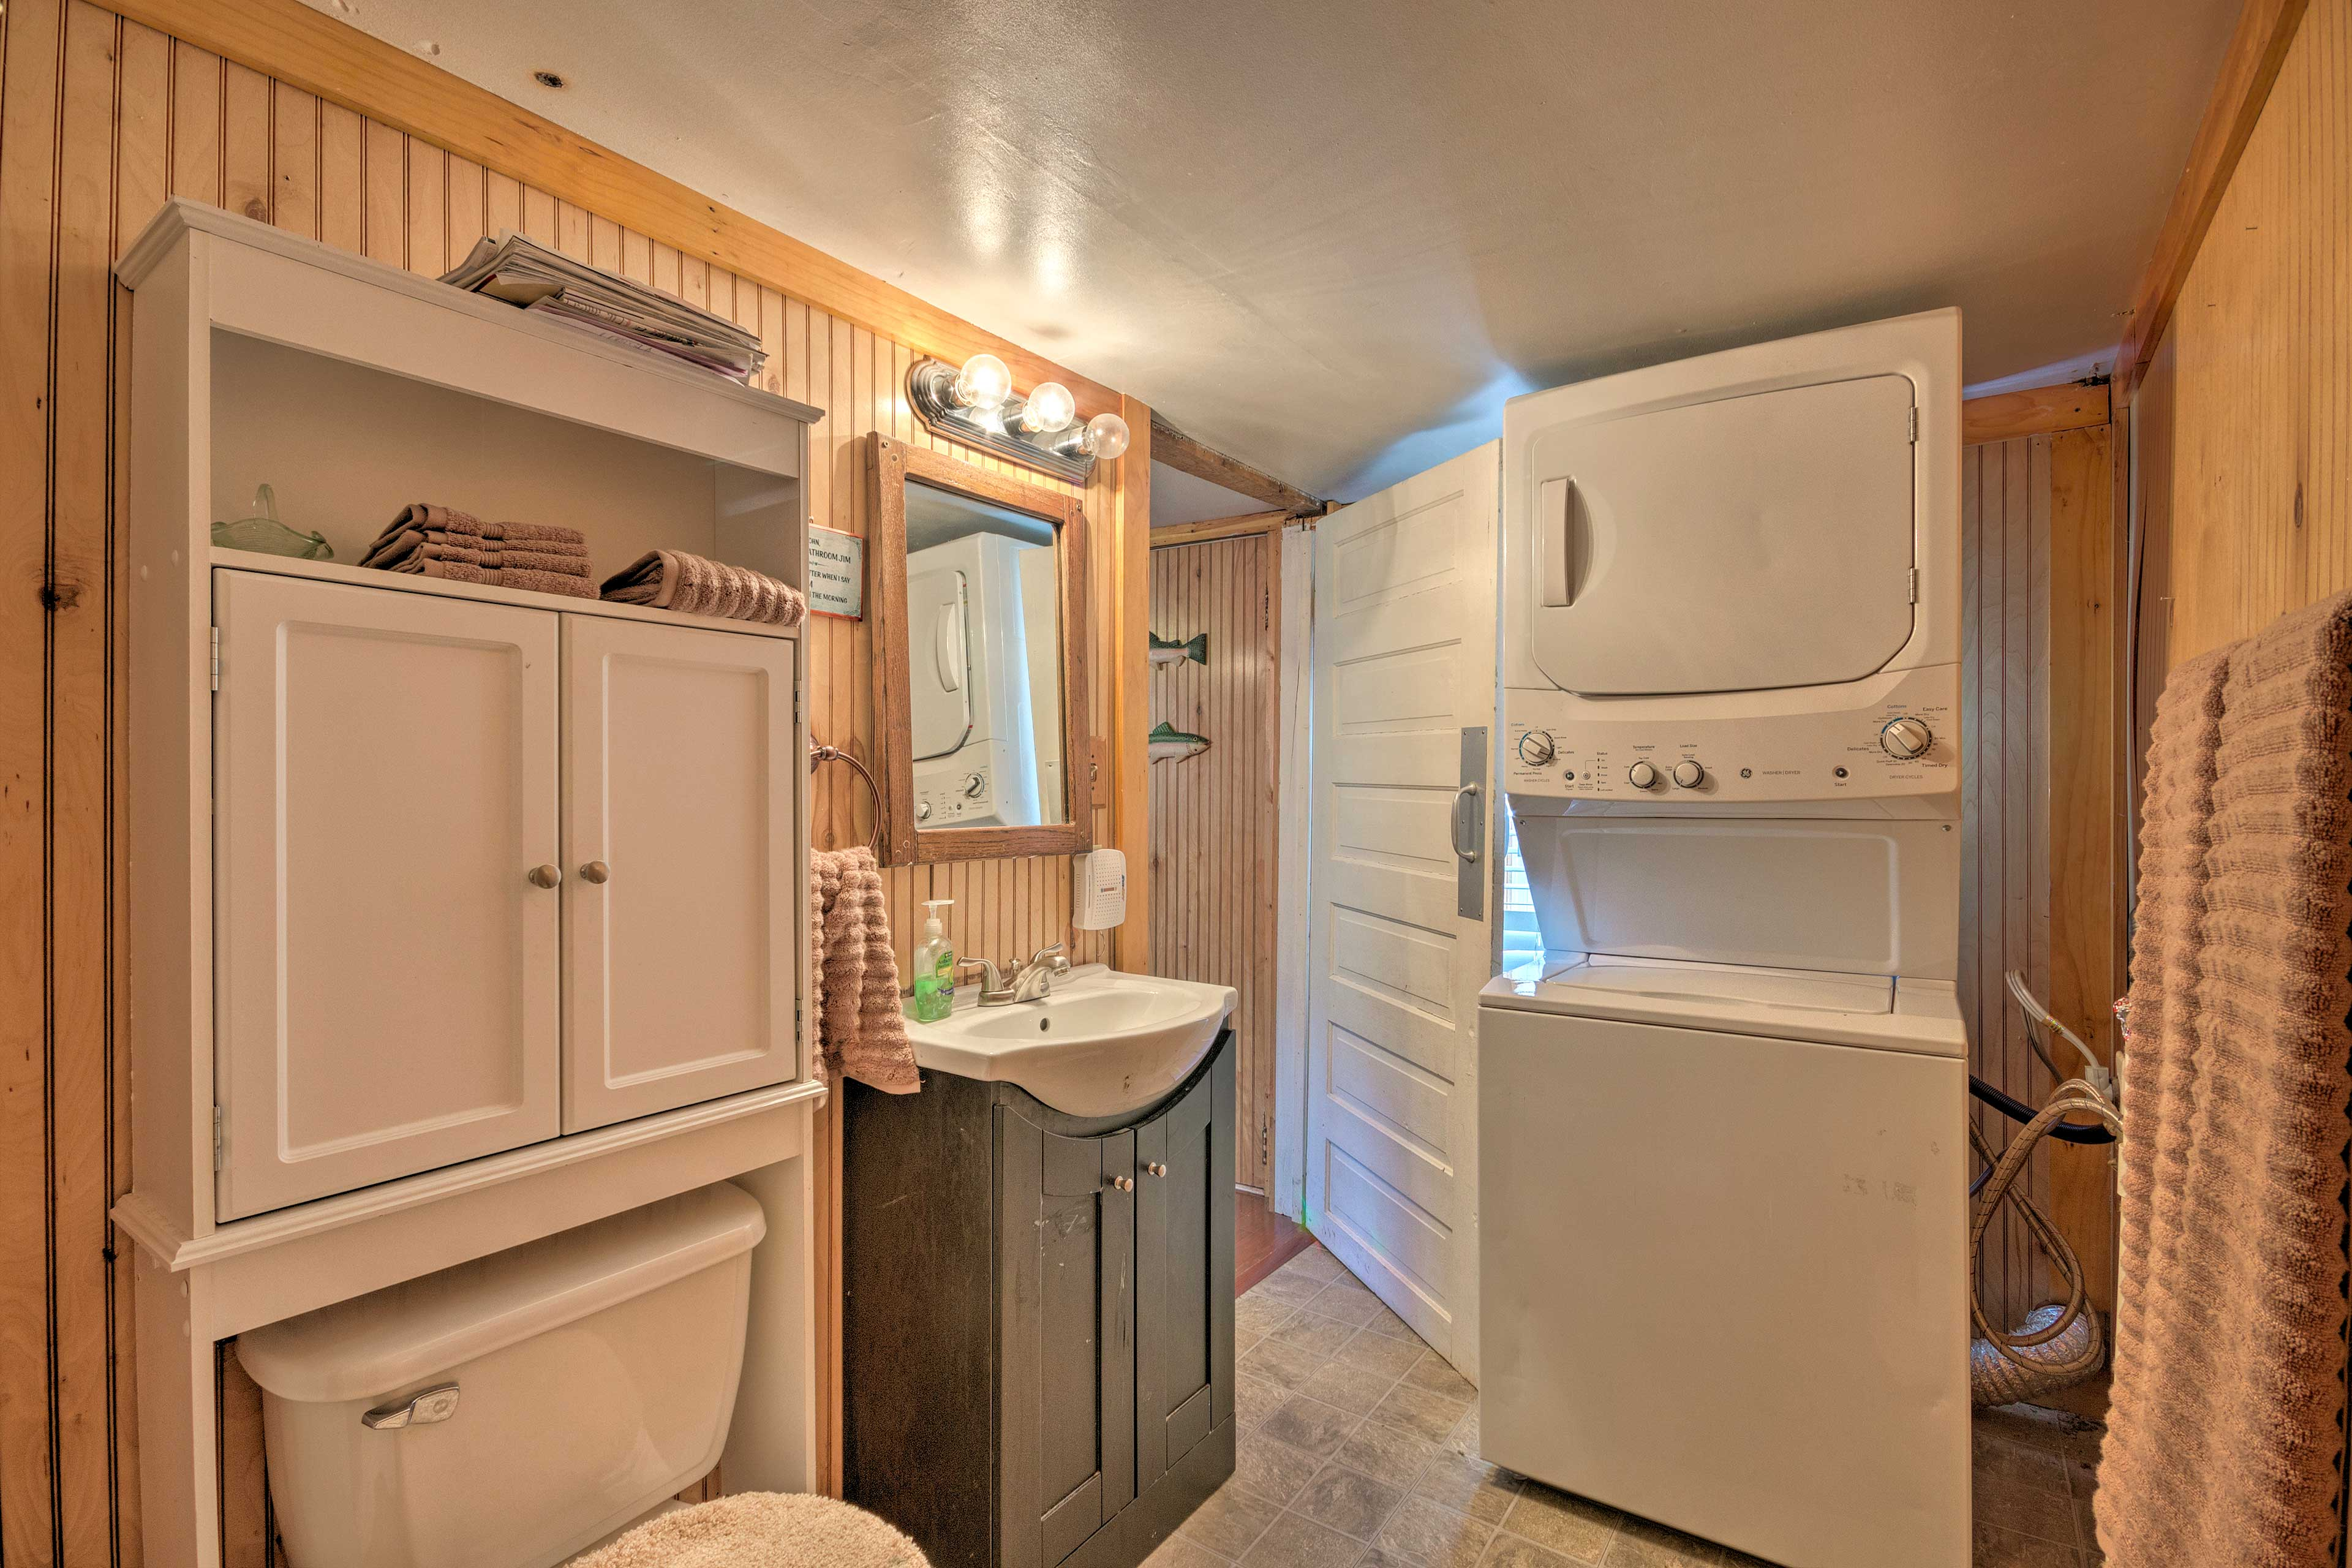 The bathroom also boasts a washer and dryer!